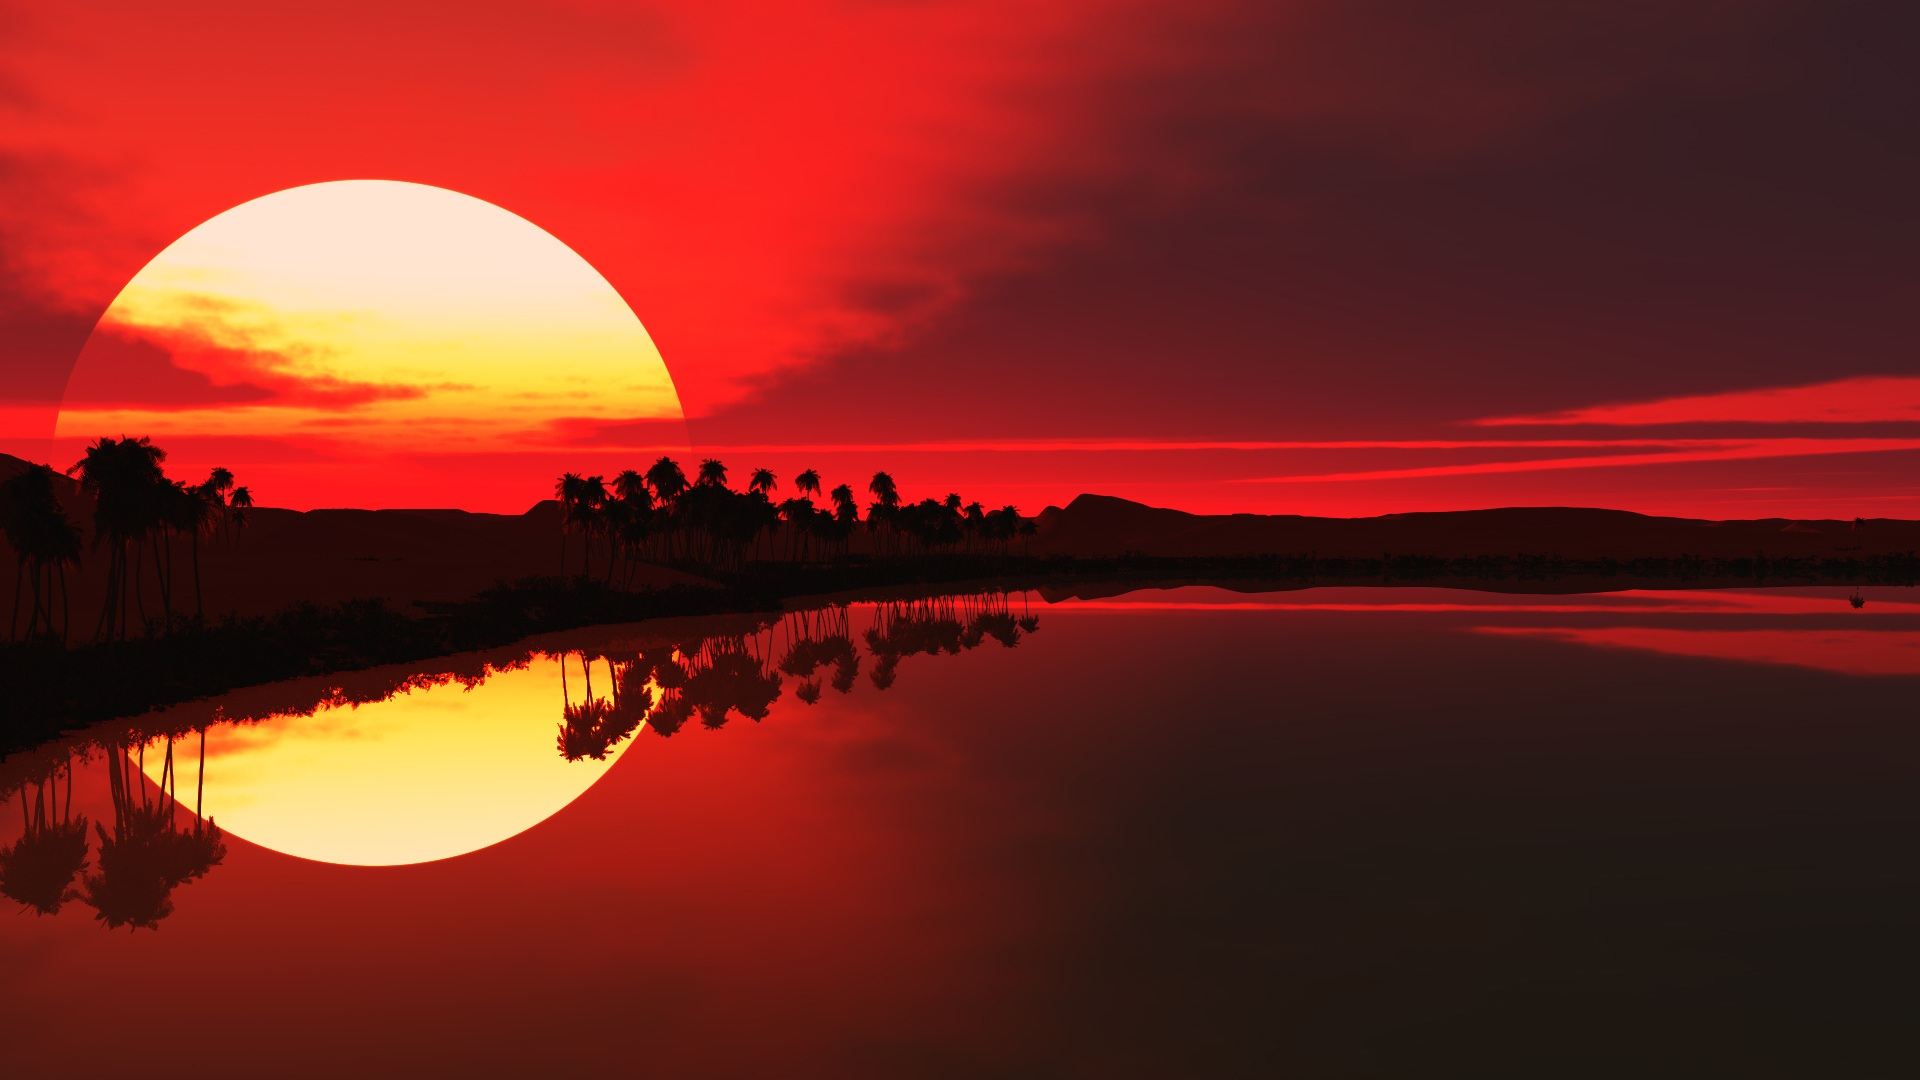 1920x1080 Hd Sunset: [70+] Hd Sunset Wallpaper On WallpaperSafari